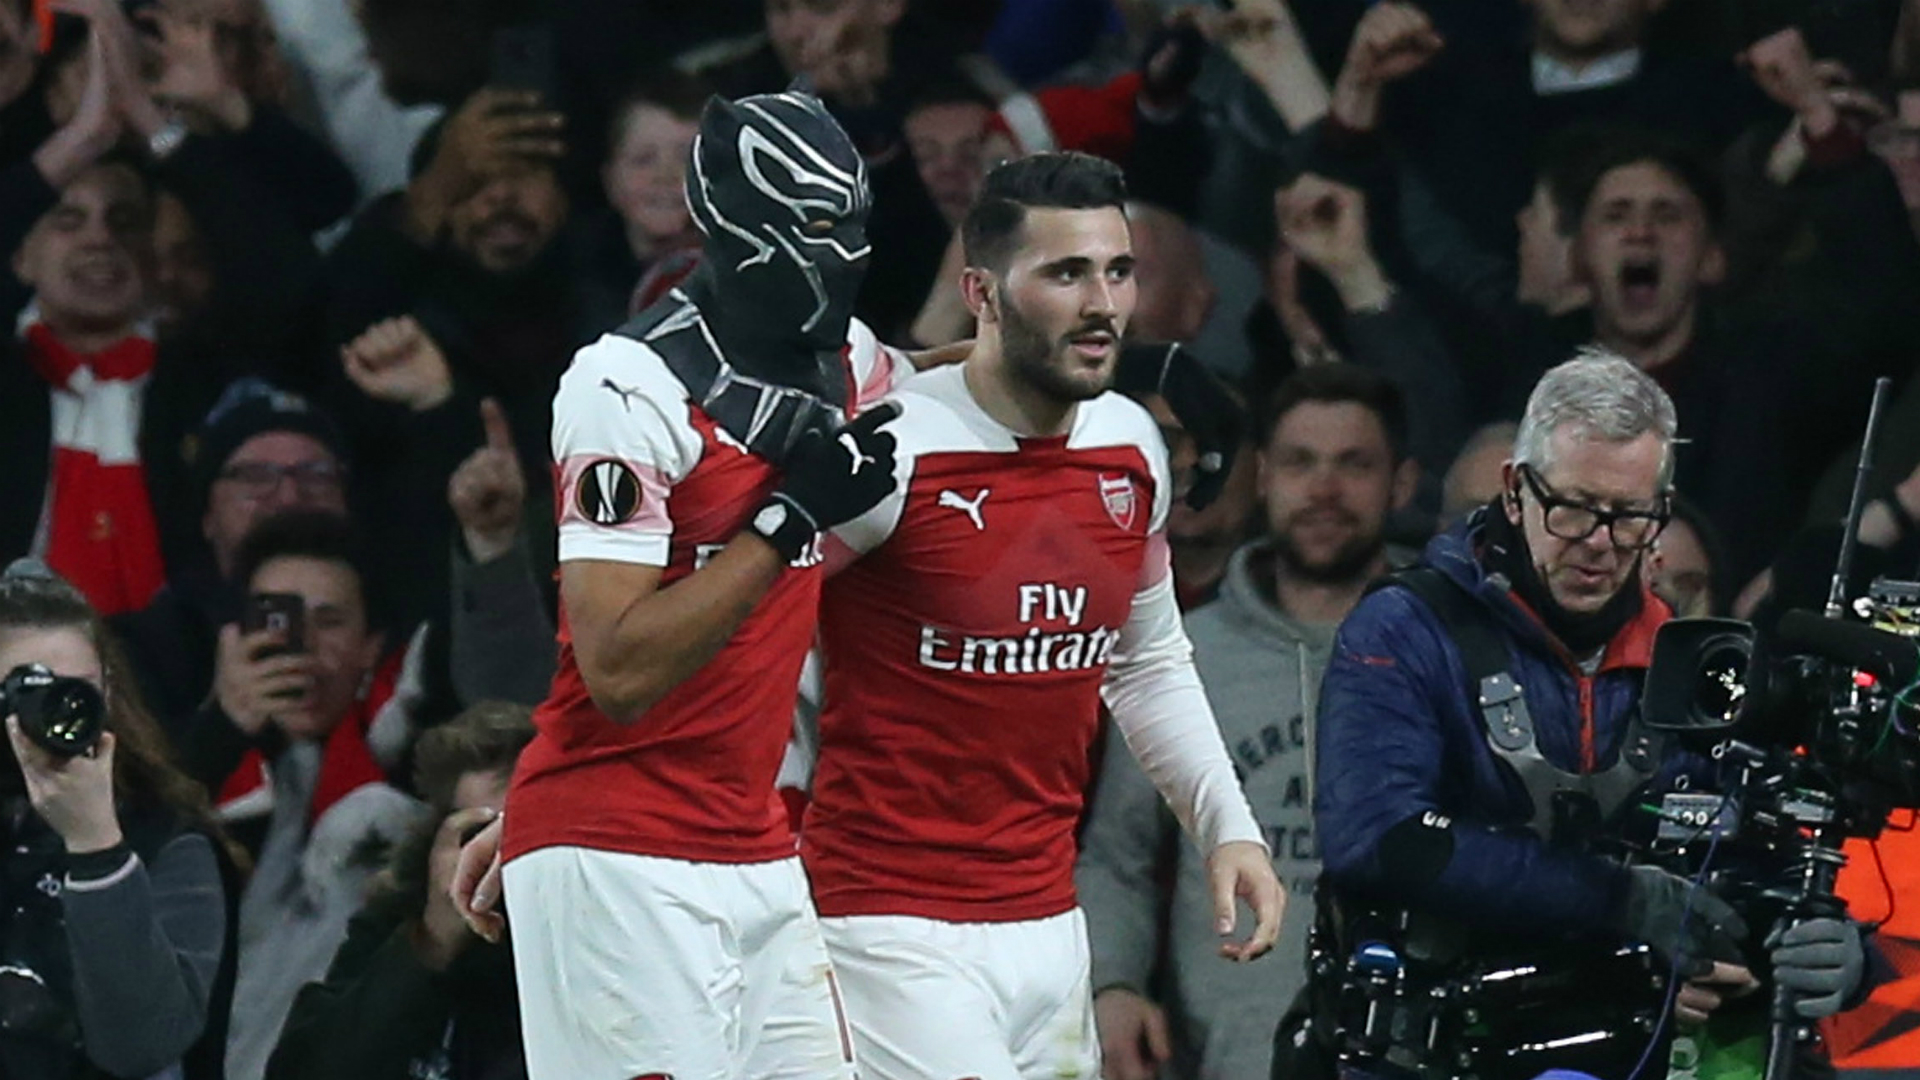 Arsenal 3 Rennes 0 (4-3 agg): Aubameyang brace sends Gunners through